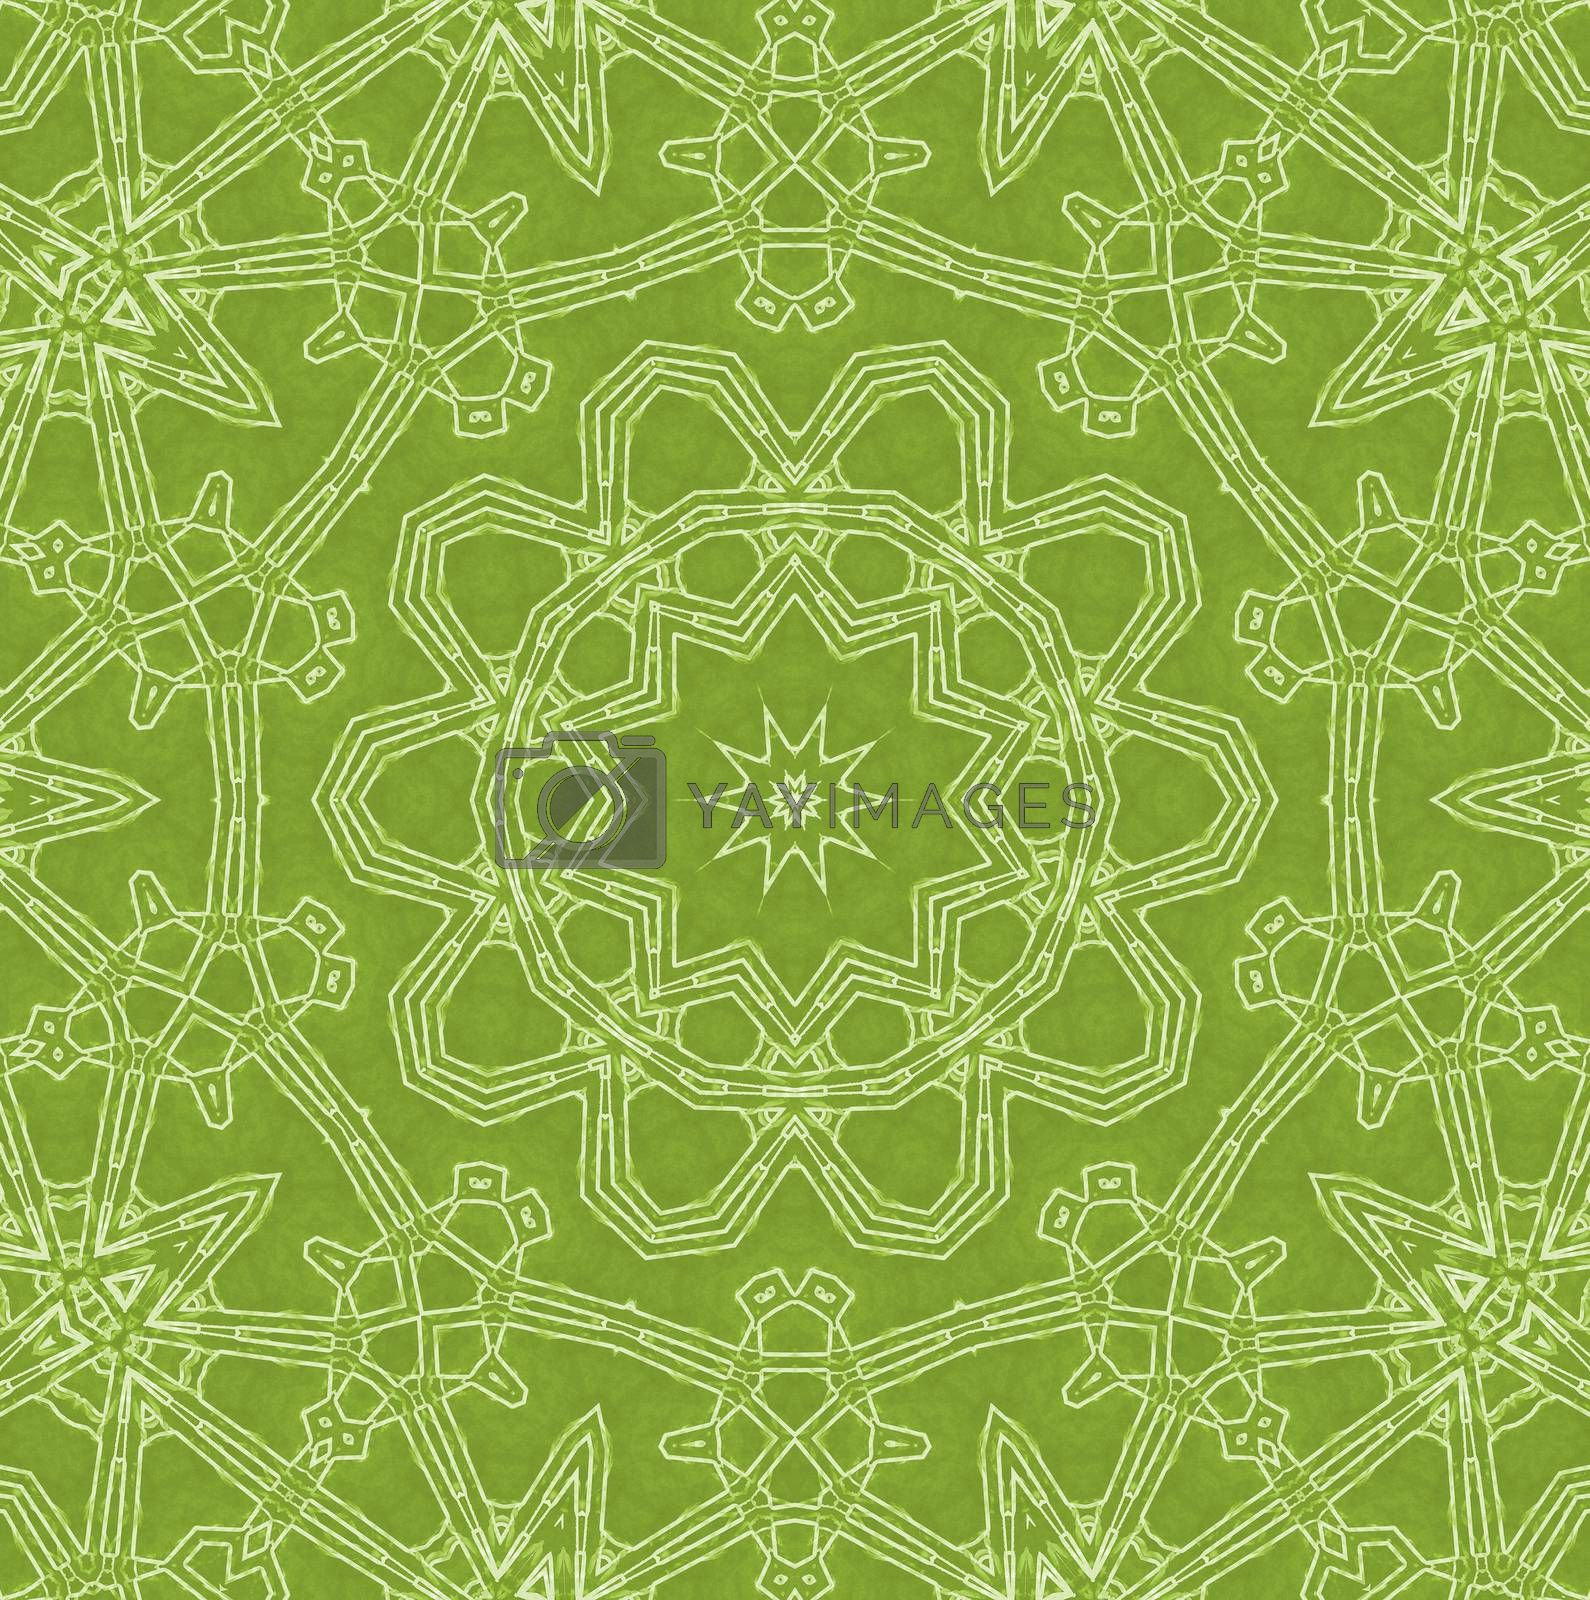 Abstract white pattern on green background